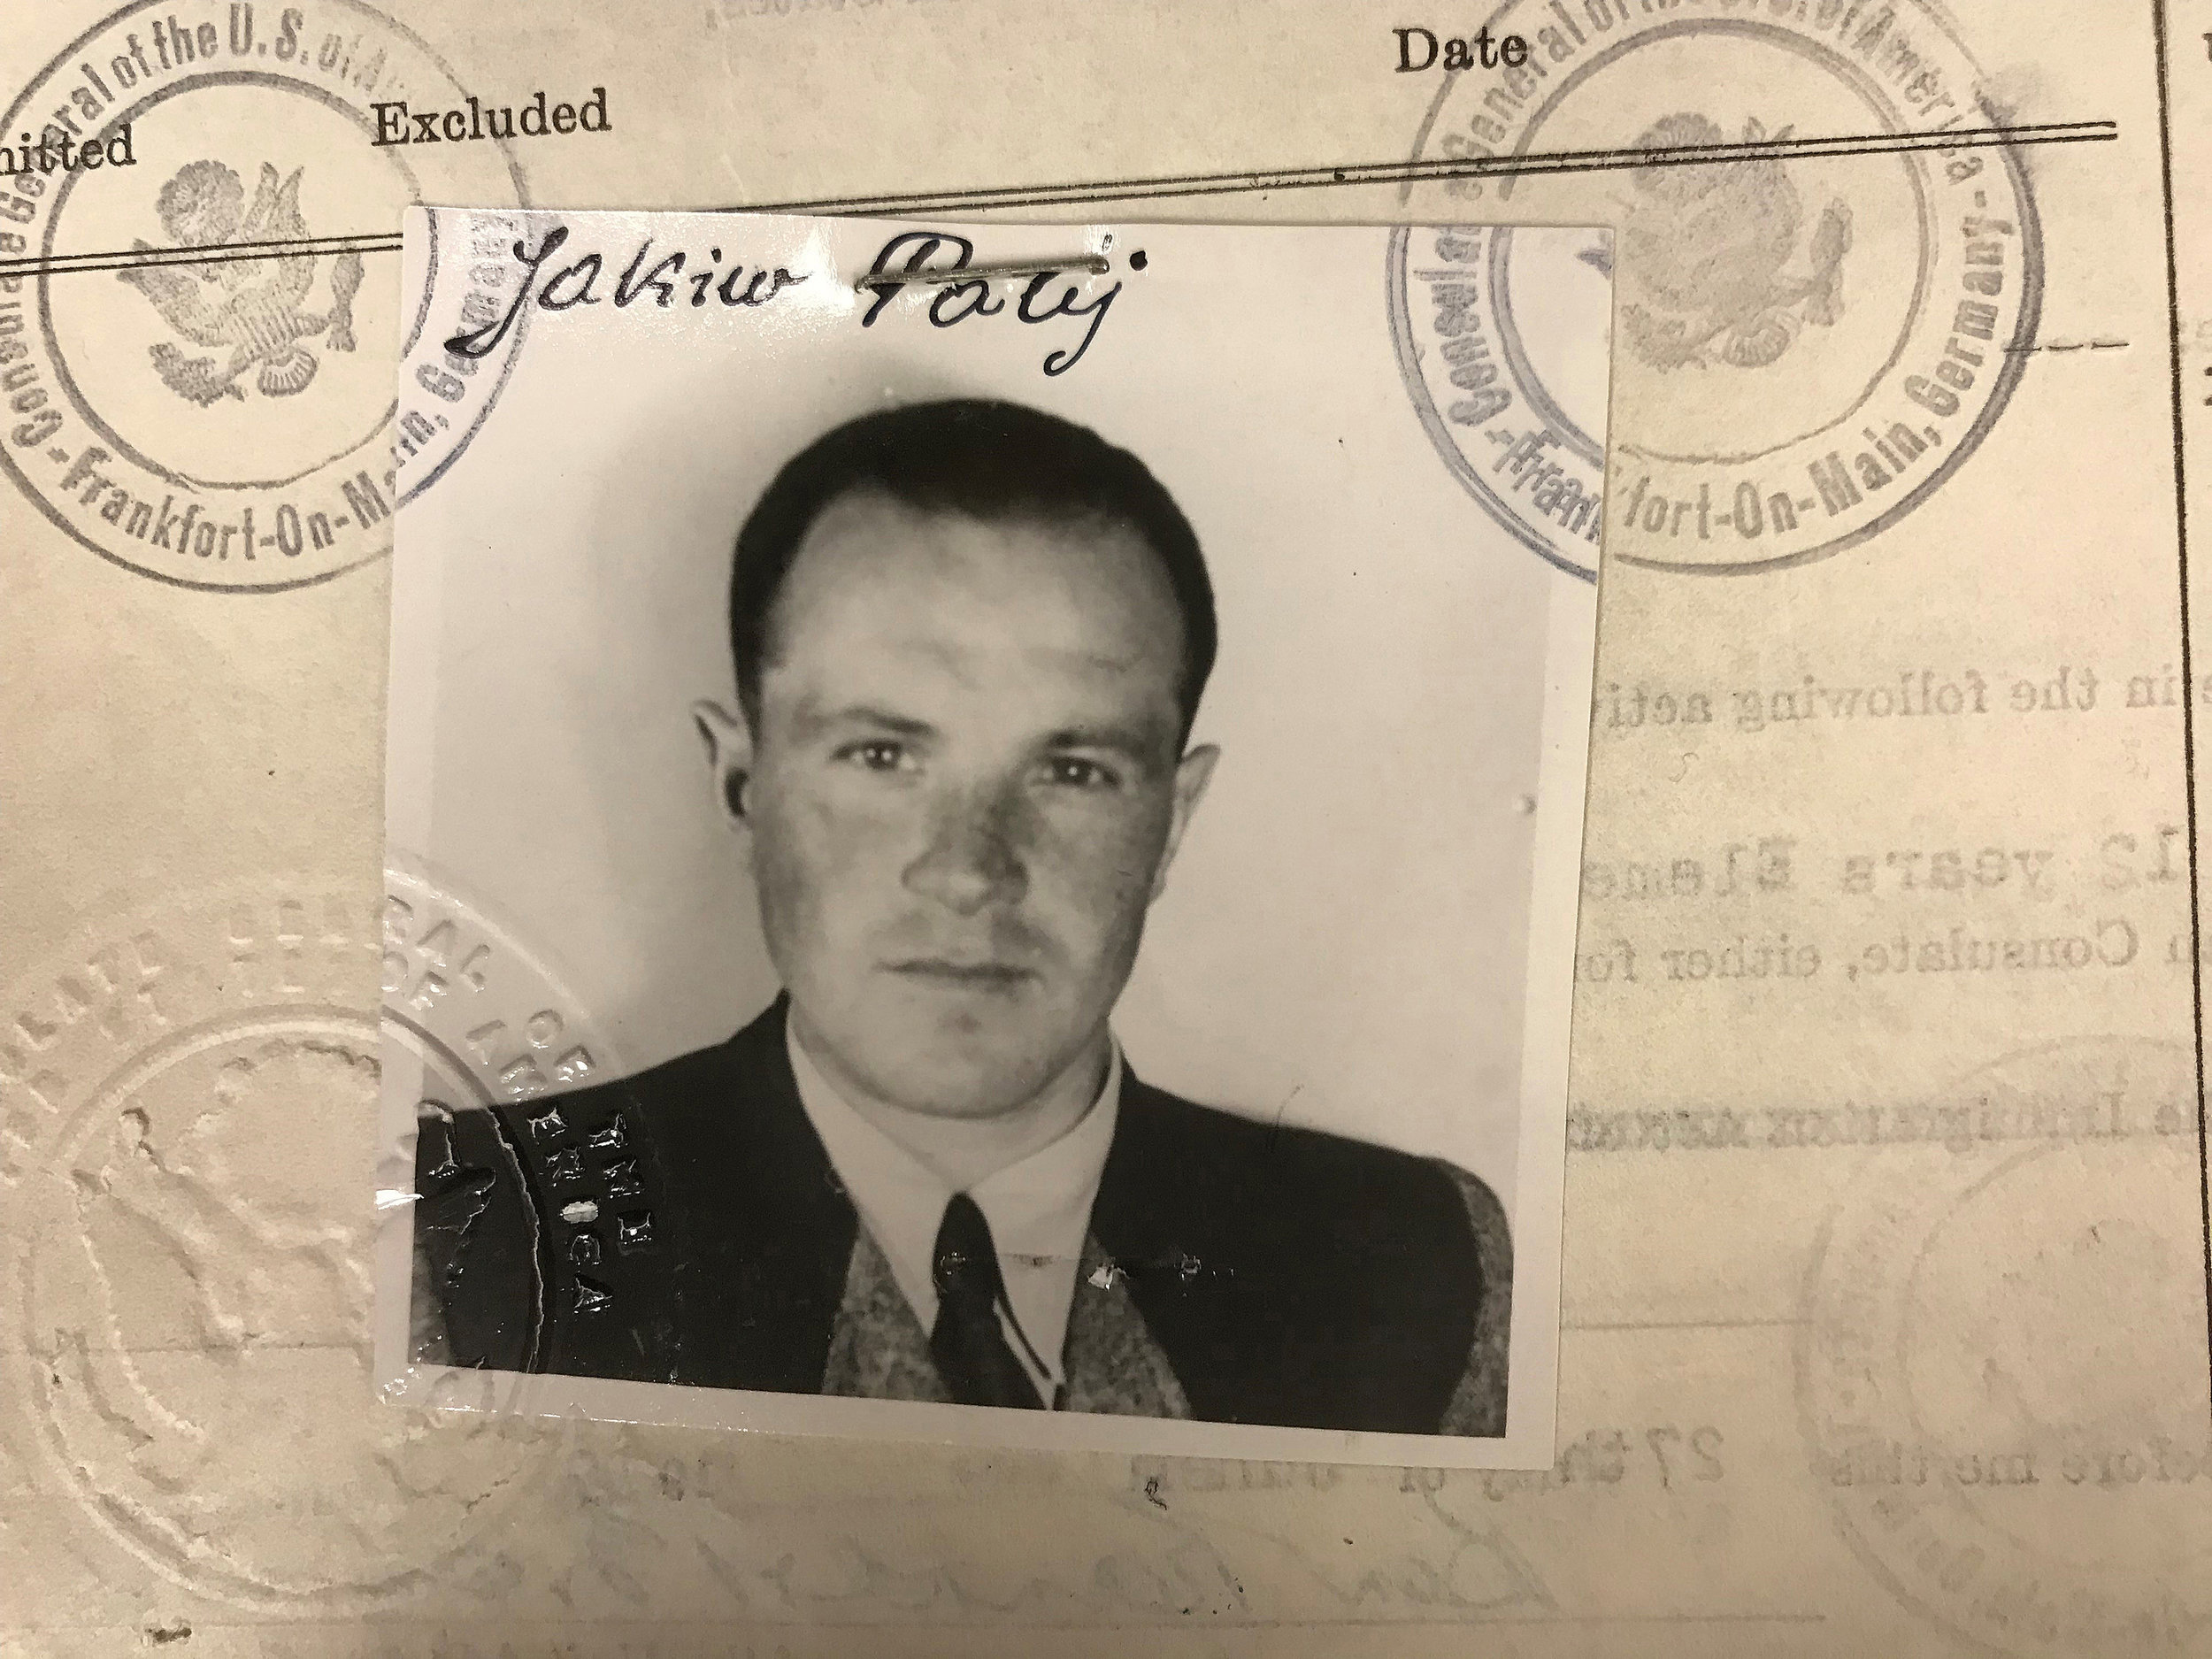 A 1949 visa photo provided by the U.S. Department of Justice shows Jakiw Palij, a former Nazi concentration camp guard who lived in Jackson Heights. Palij was extradited to Germany last year and German media report that he died Wednesday. US Department of Justice via AP, file